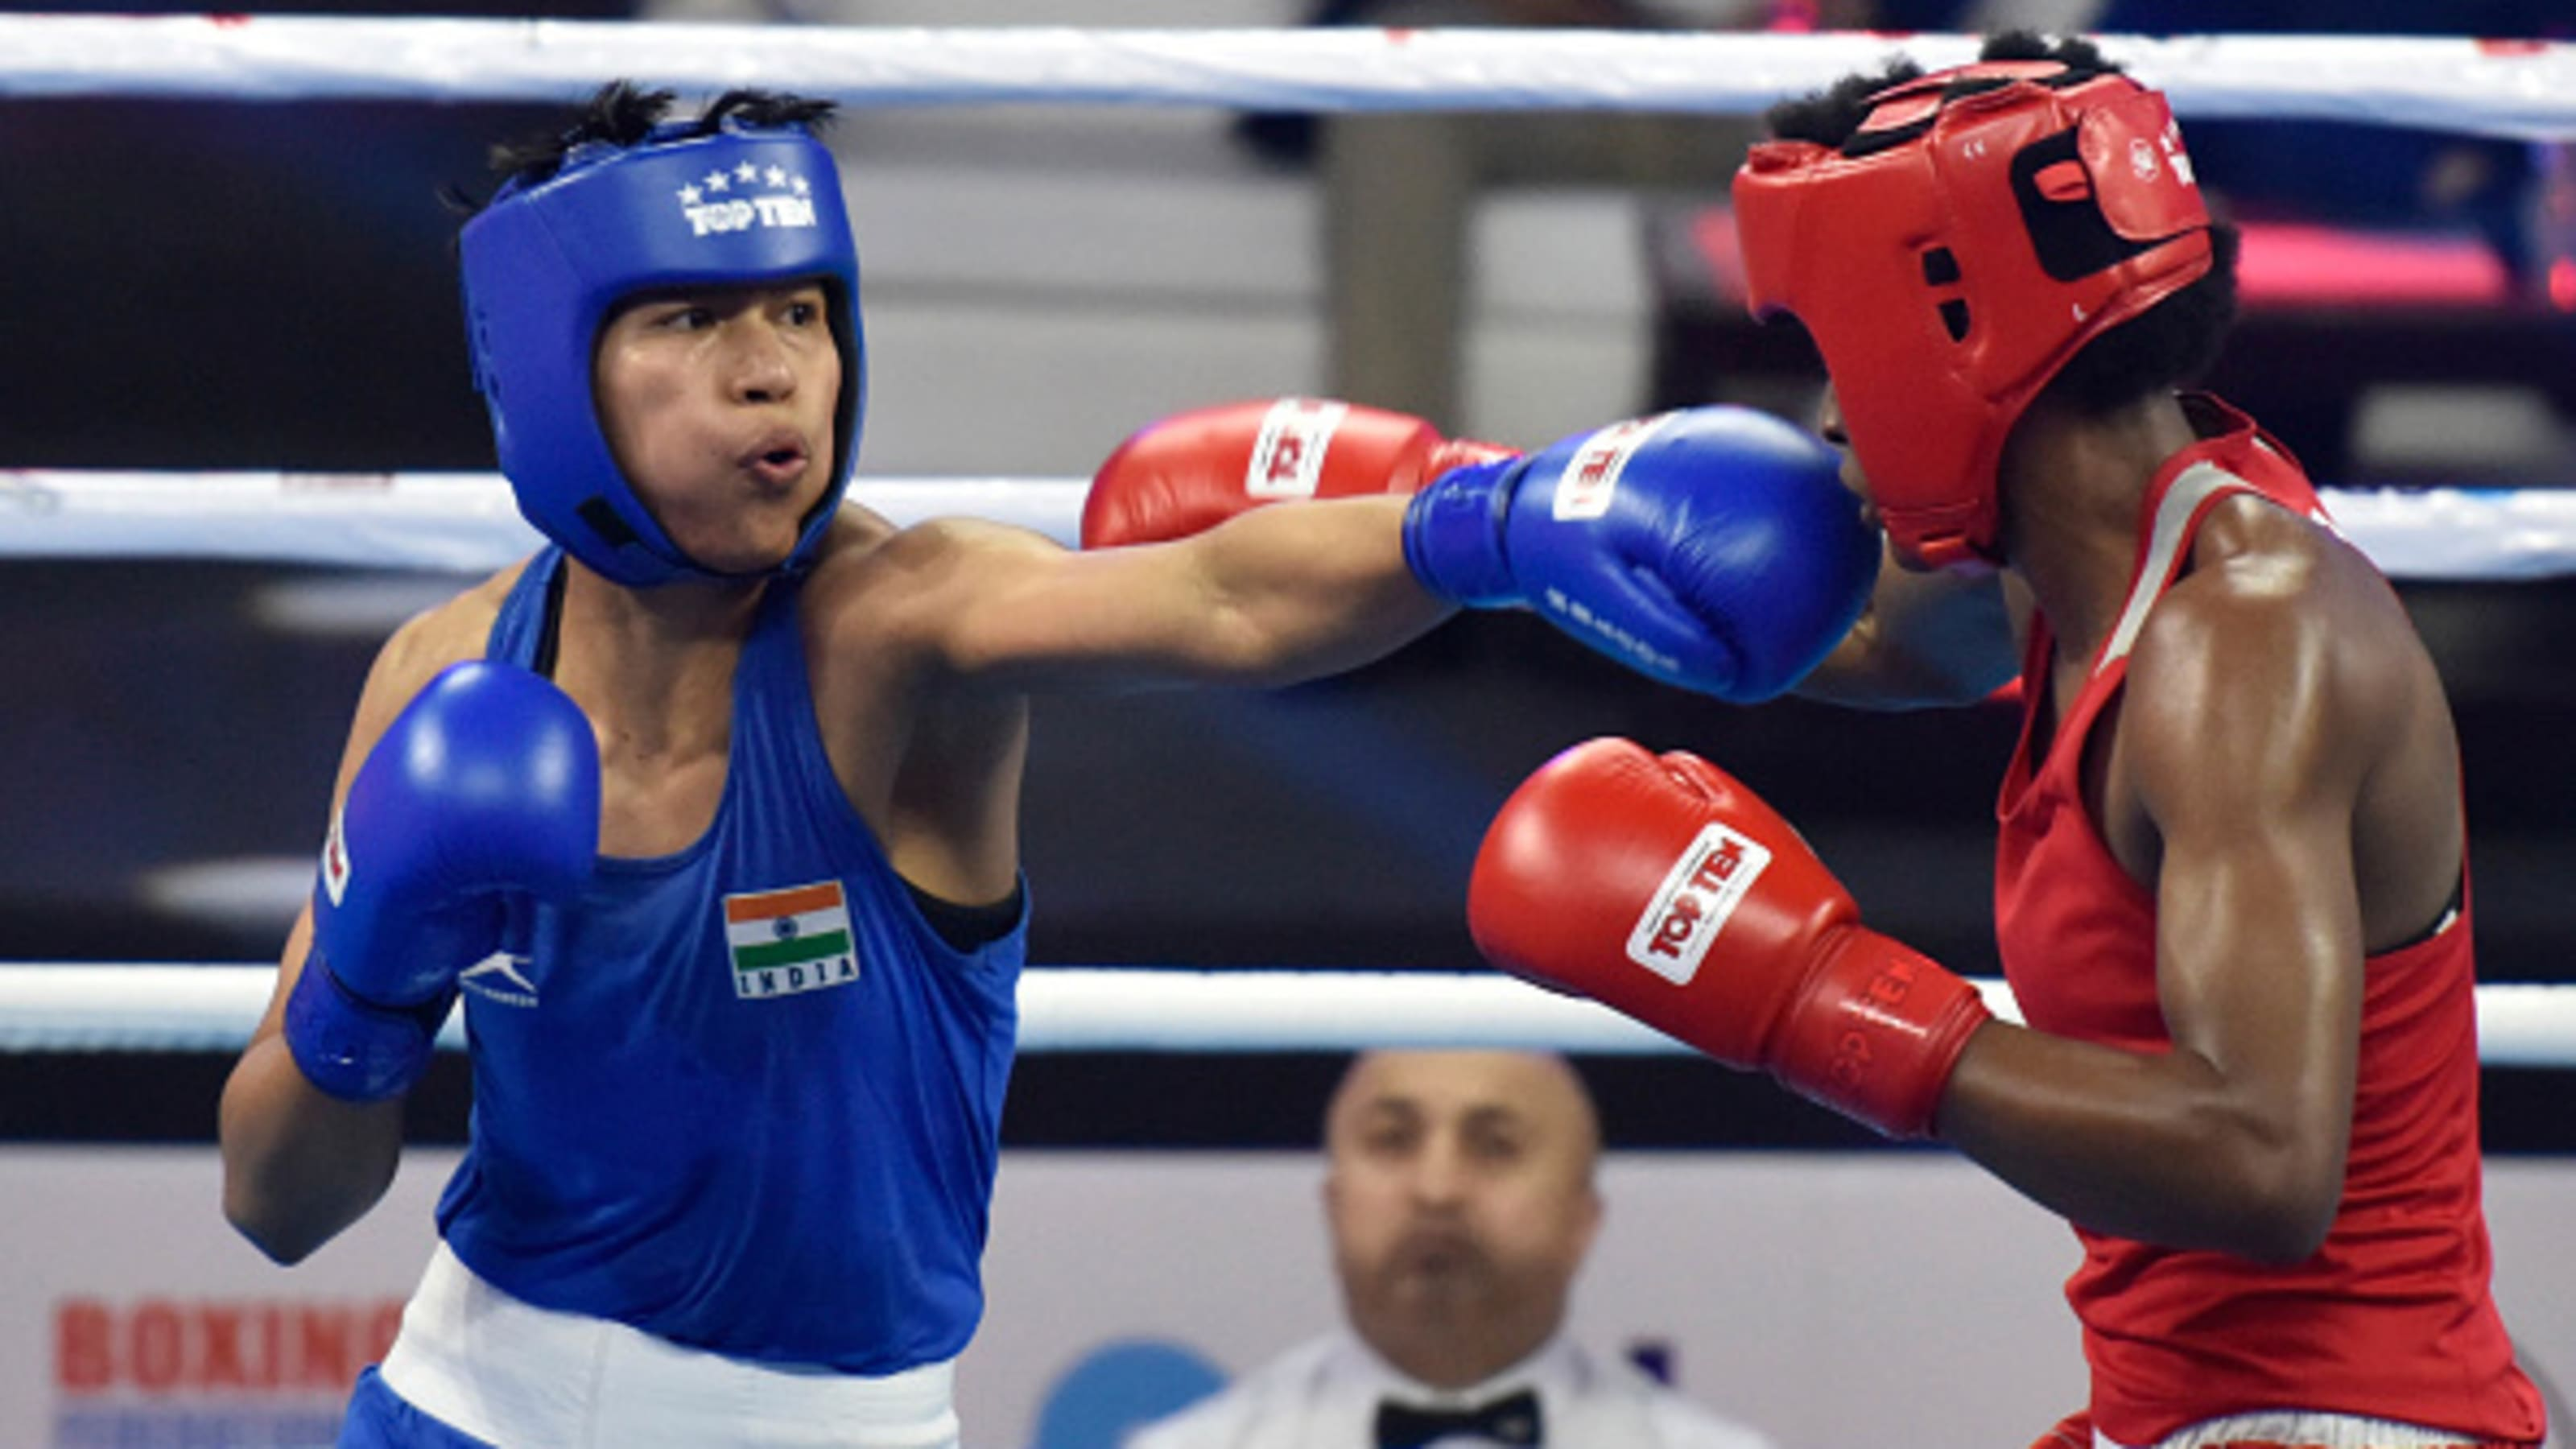 Boxer Lovlina Borgohain secures India's second medal at the Tokyo Olympics, and Twitter erupts with joy